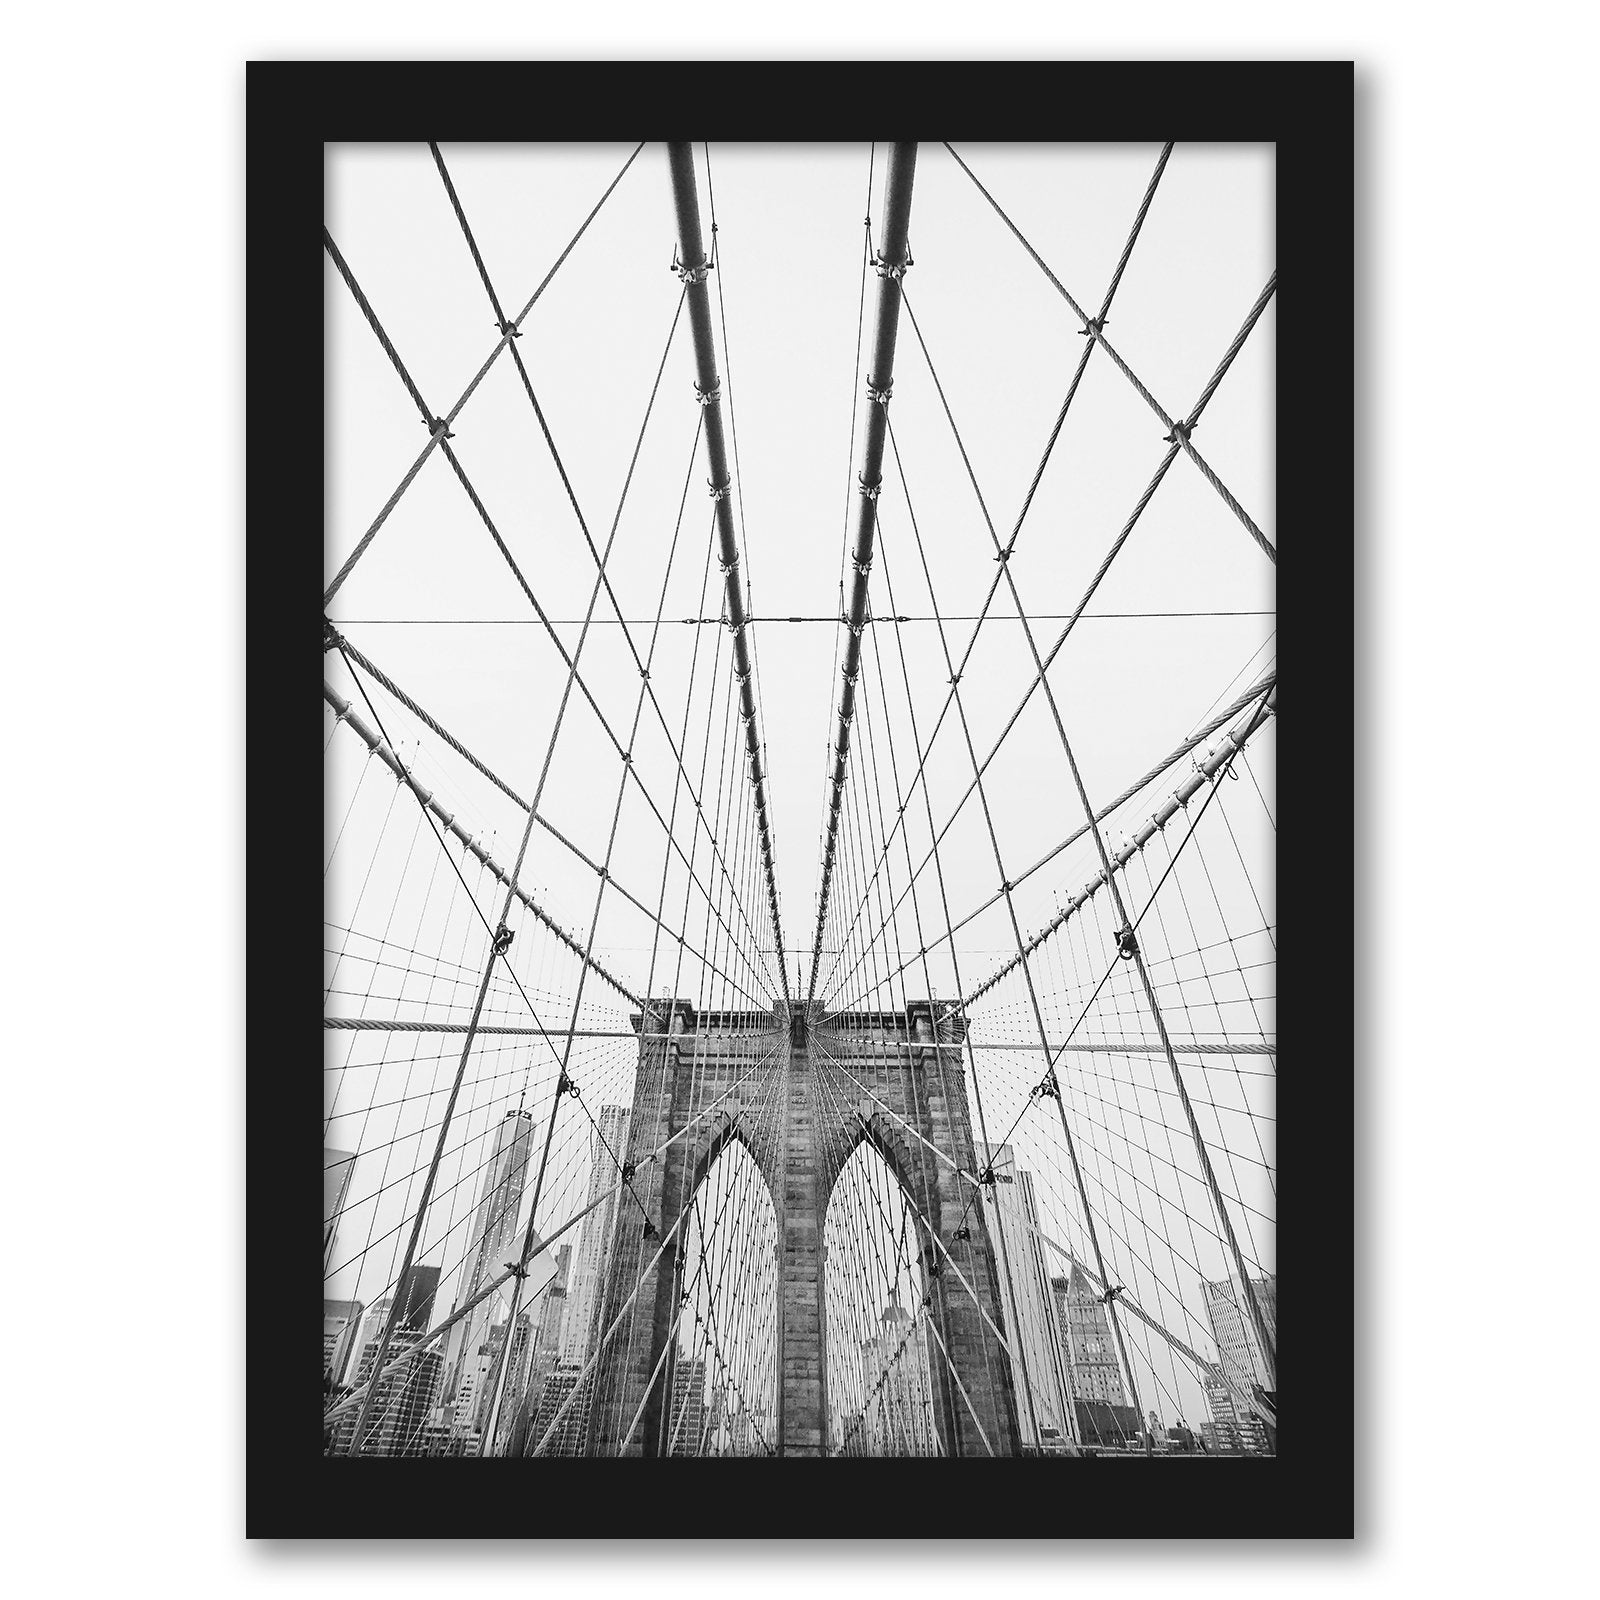 Black & White Photography Framed Gallery Wall Set - Art Set - Americanflat